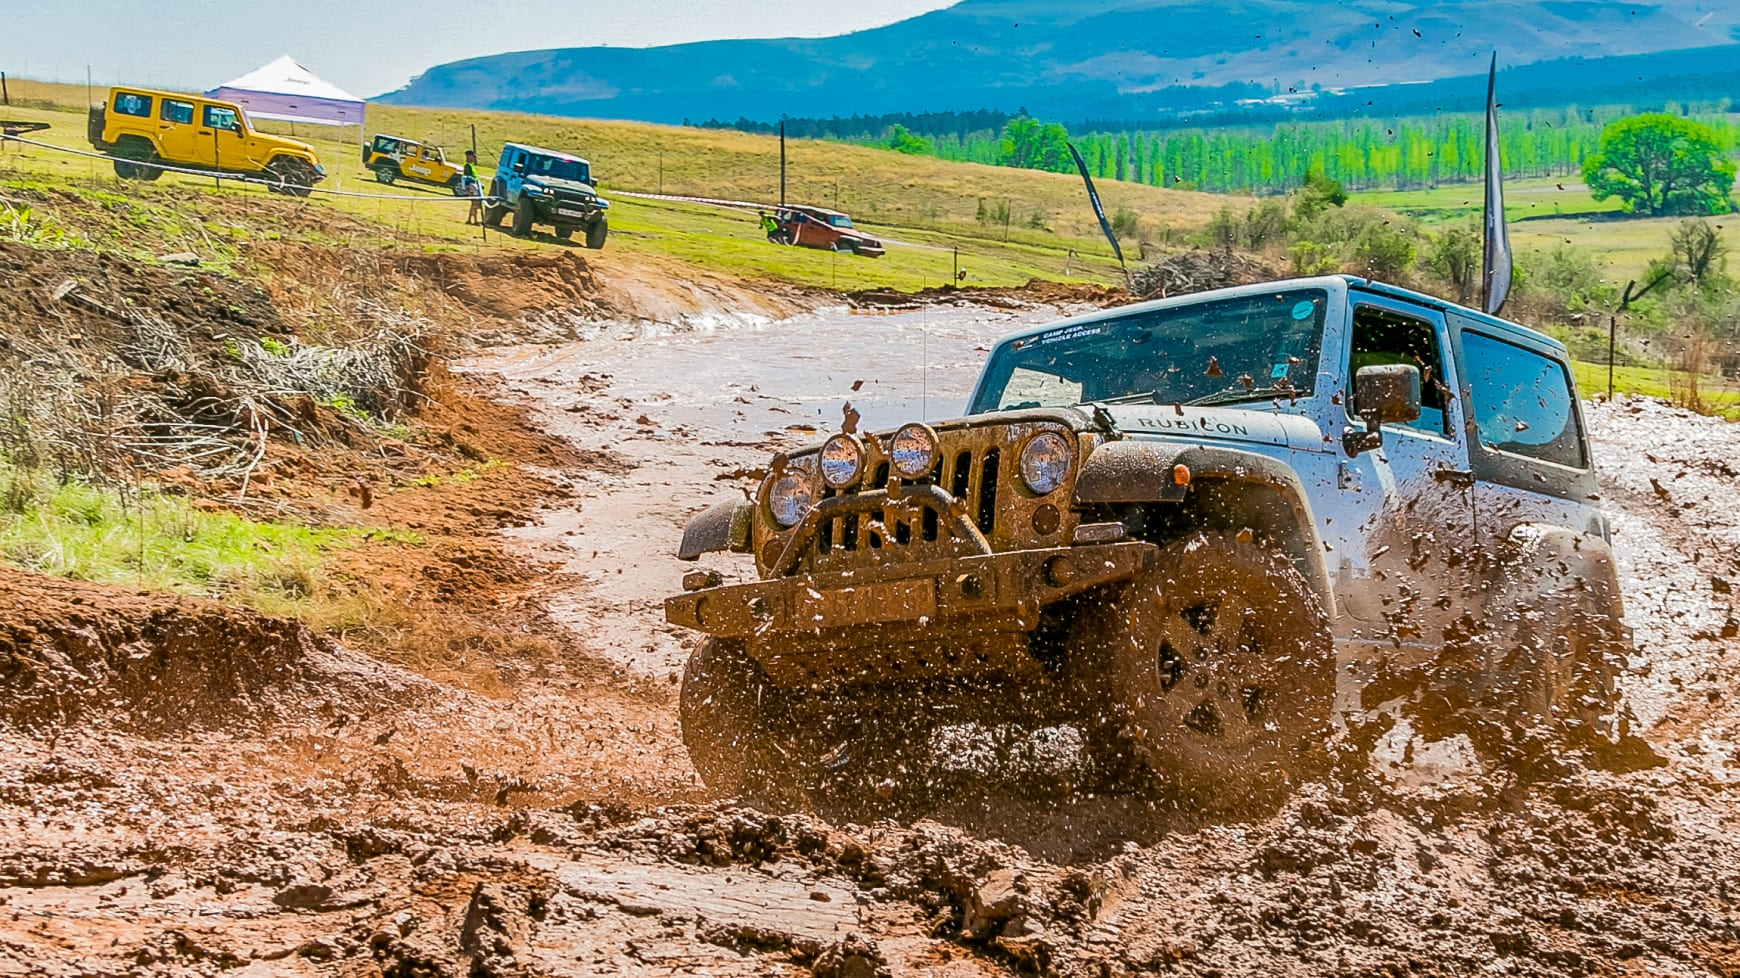 A Jeep Equipped with Mud Tires Splashing Through the Hillside